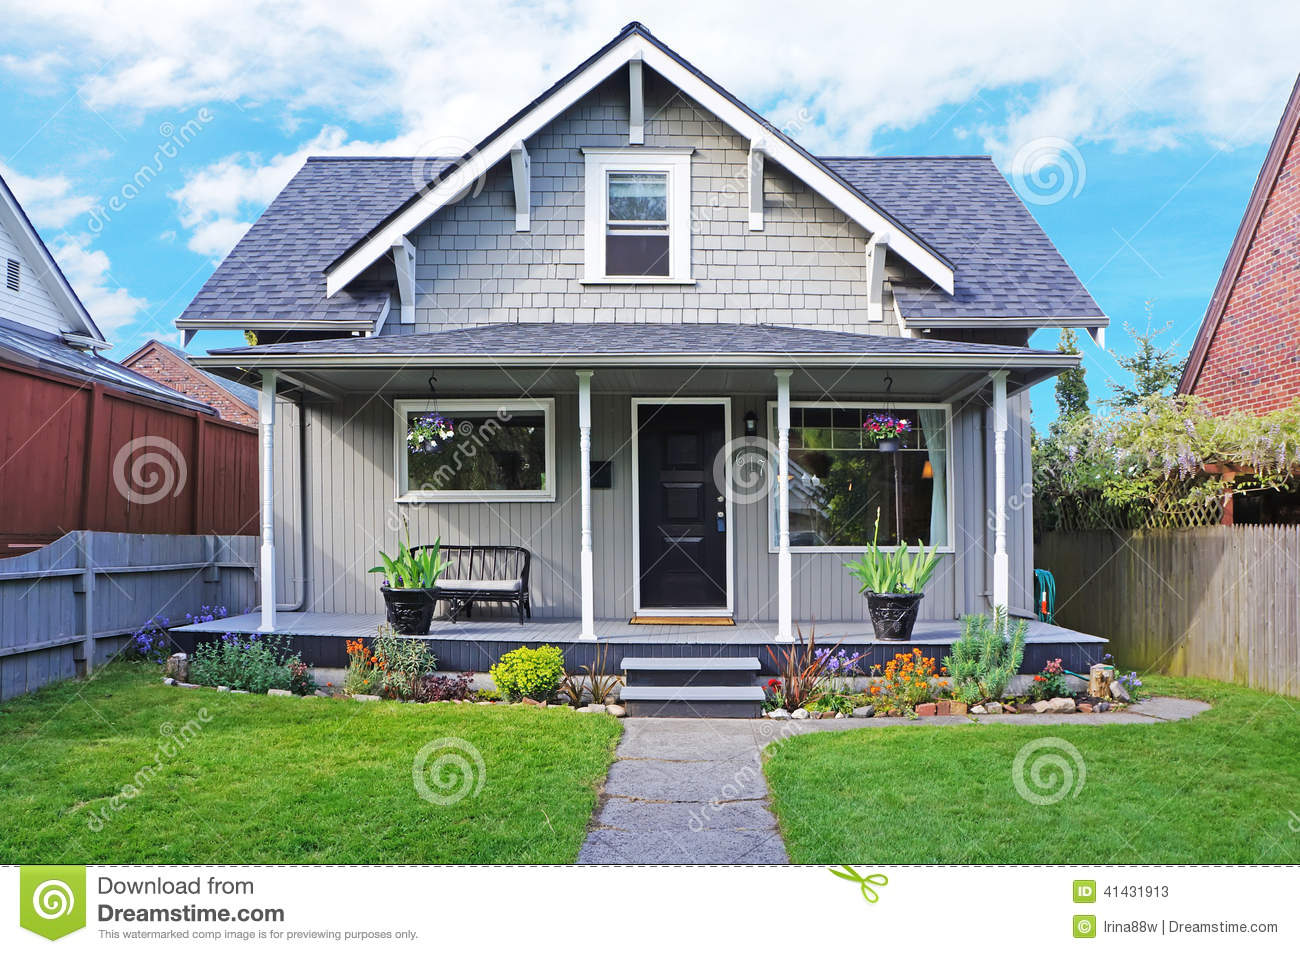 House Exterior Entrance Porch And Front Yard View Stock Image Image Of Architecture Home 41431913